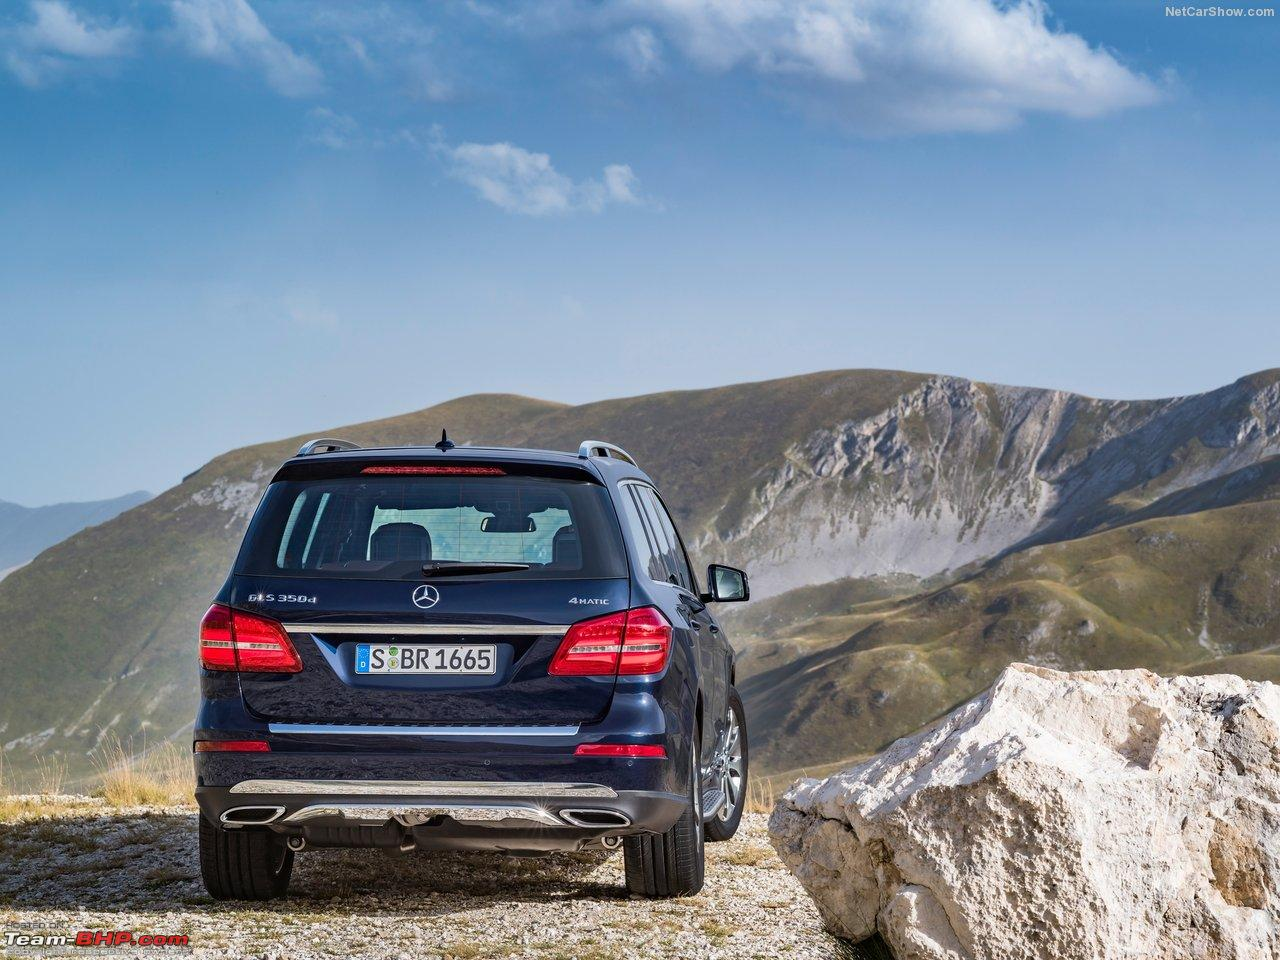 Mercedes brings in gls350d for homologation team bhp for Mercedes benz gls 350d price in india